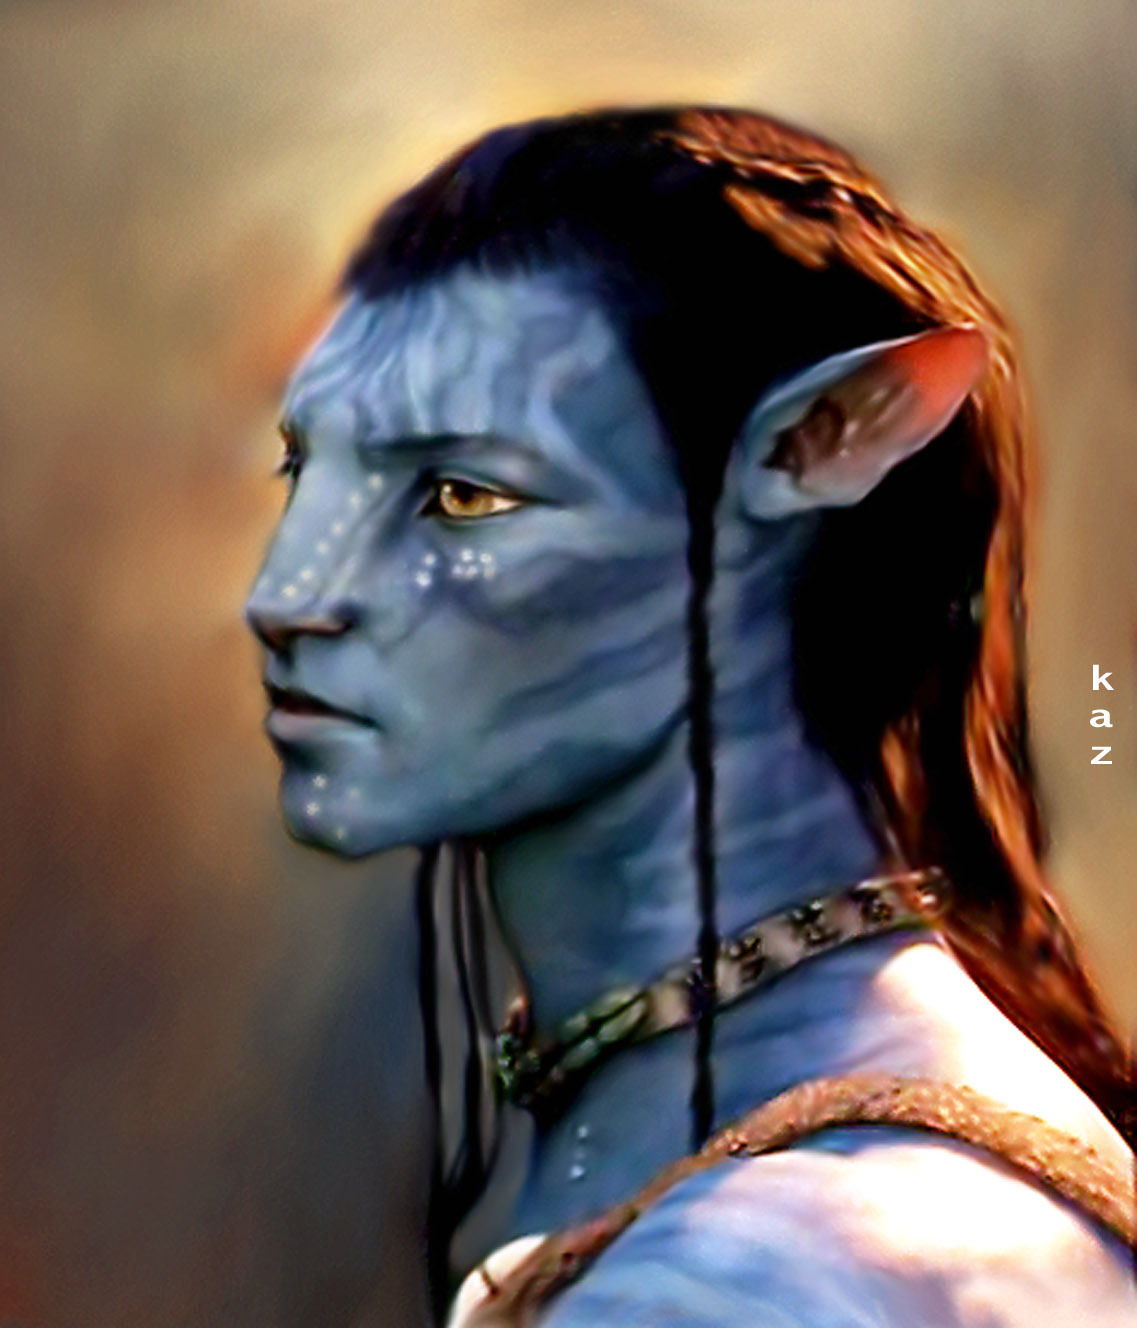 Avatar Jake: Fan Art (Jan 04 2013 21:02:24)